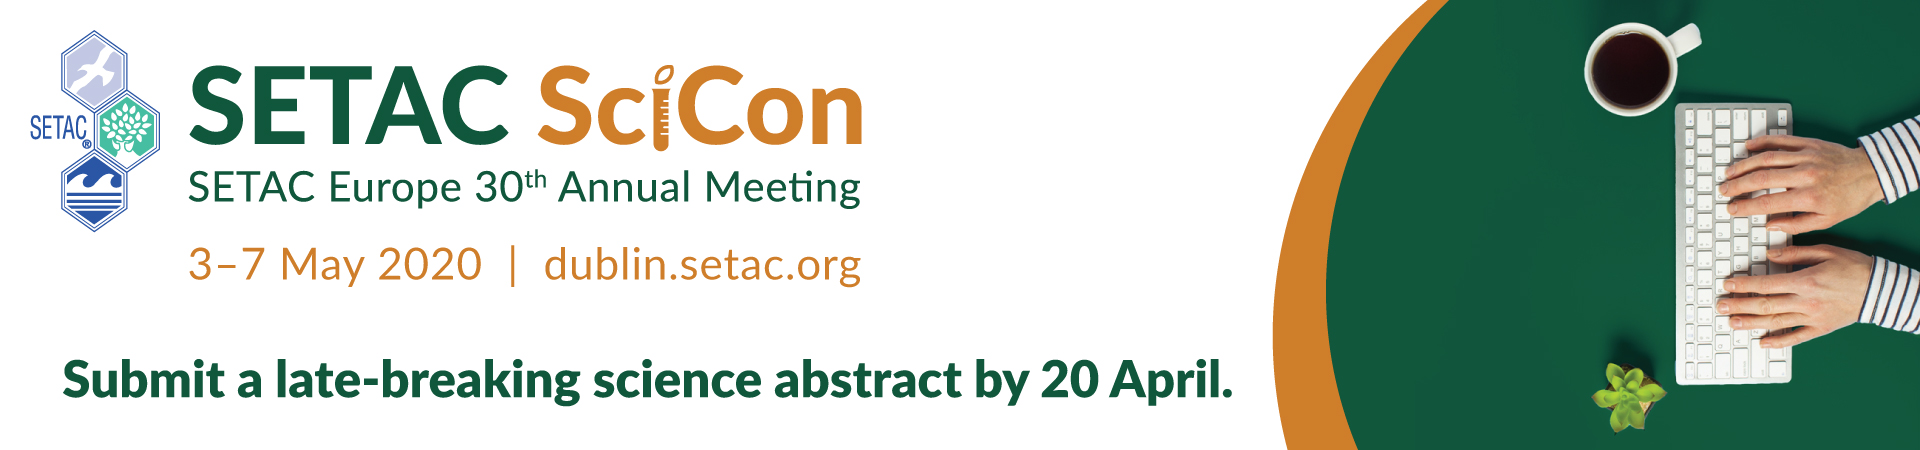 SETAC Dublin late-breaking science abstract submission